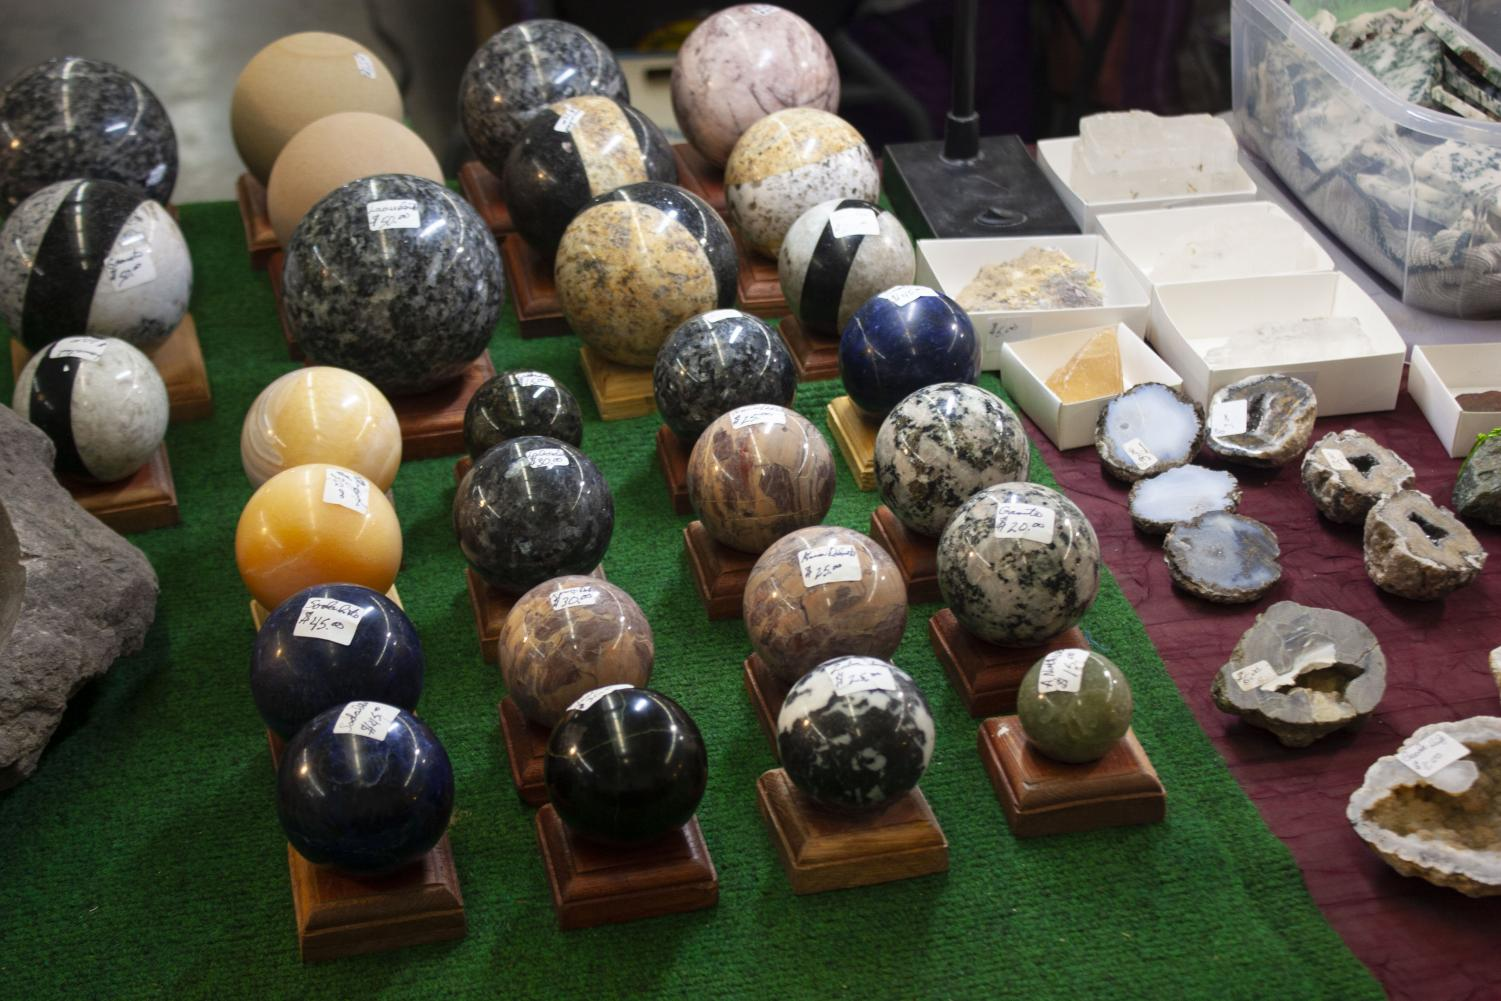 A+number+of+colorful+stones+and+agates+have+been+molded+and+polished+into+decorative+spheres.++